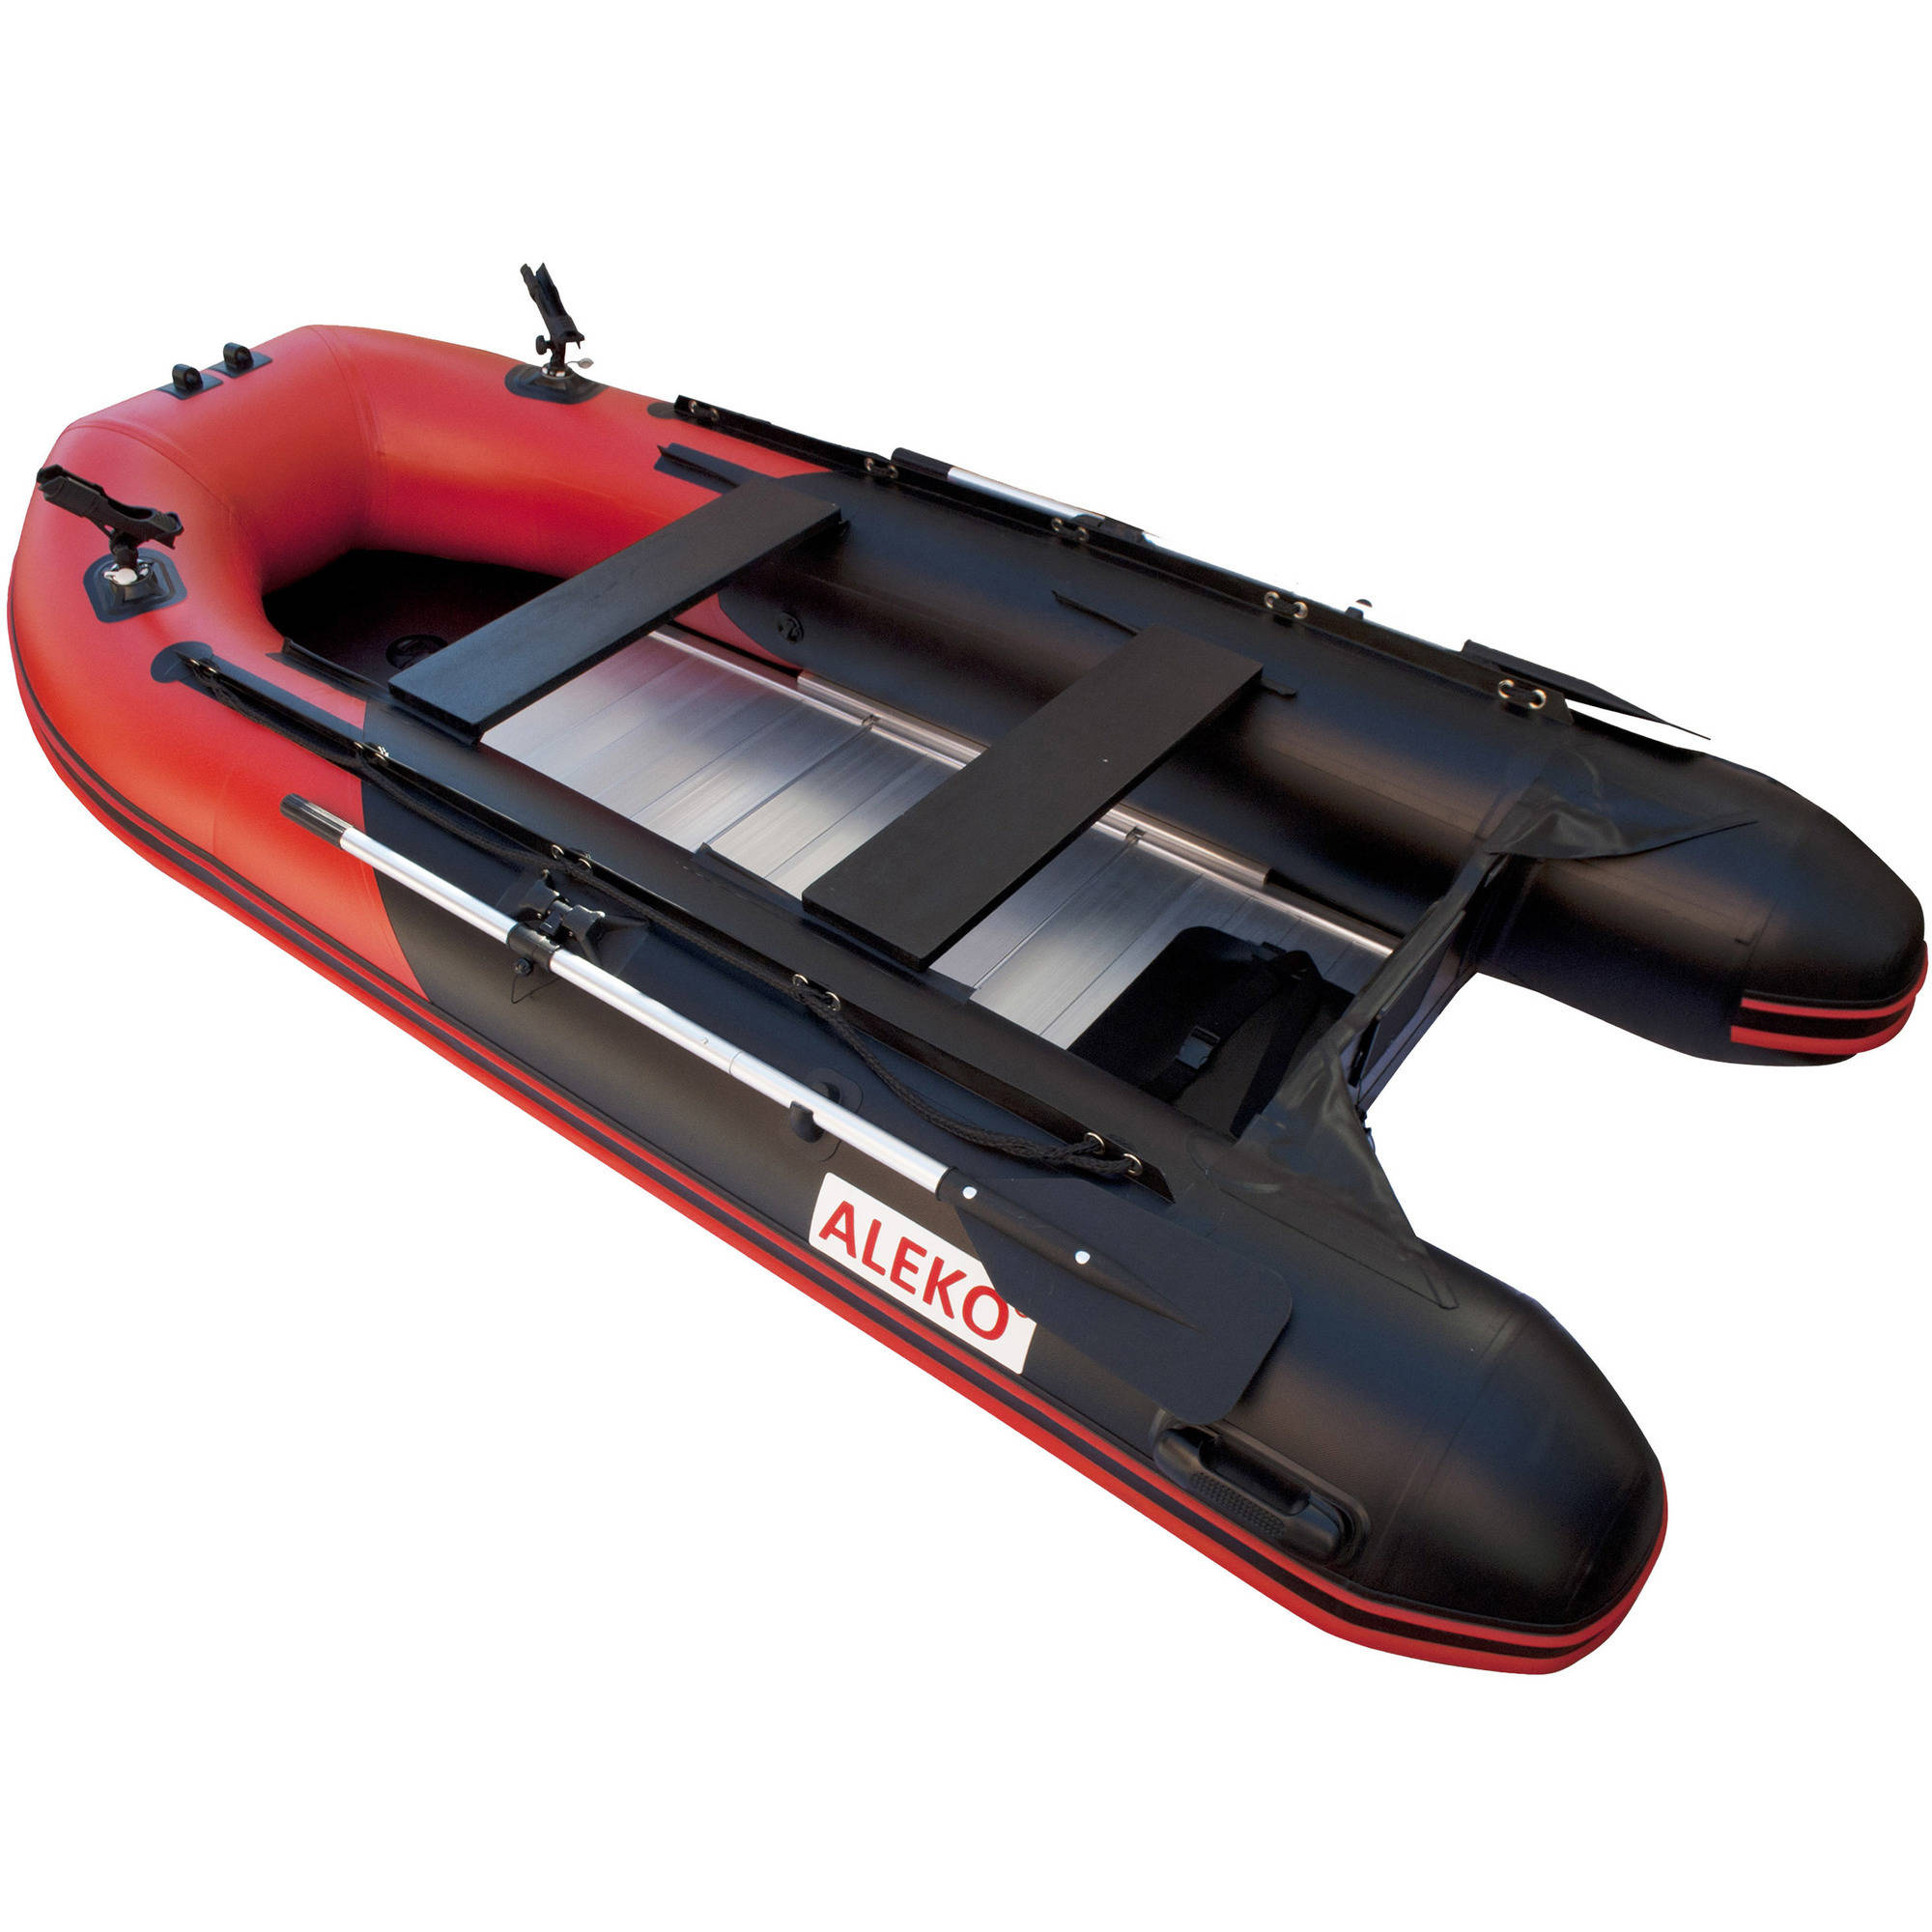 ALEKO PRO Fishing Inflatable Boat with Aluminum Floor Front Board Holders 10.5 ft Red and Black by ALEKO